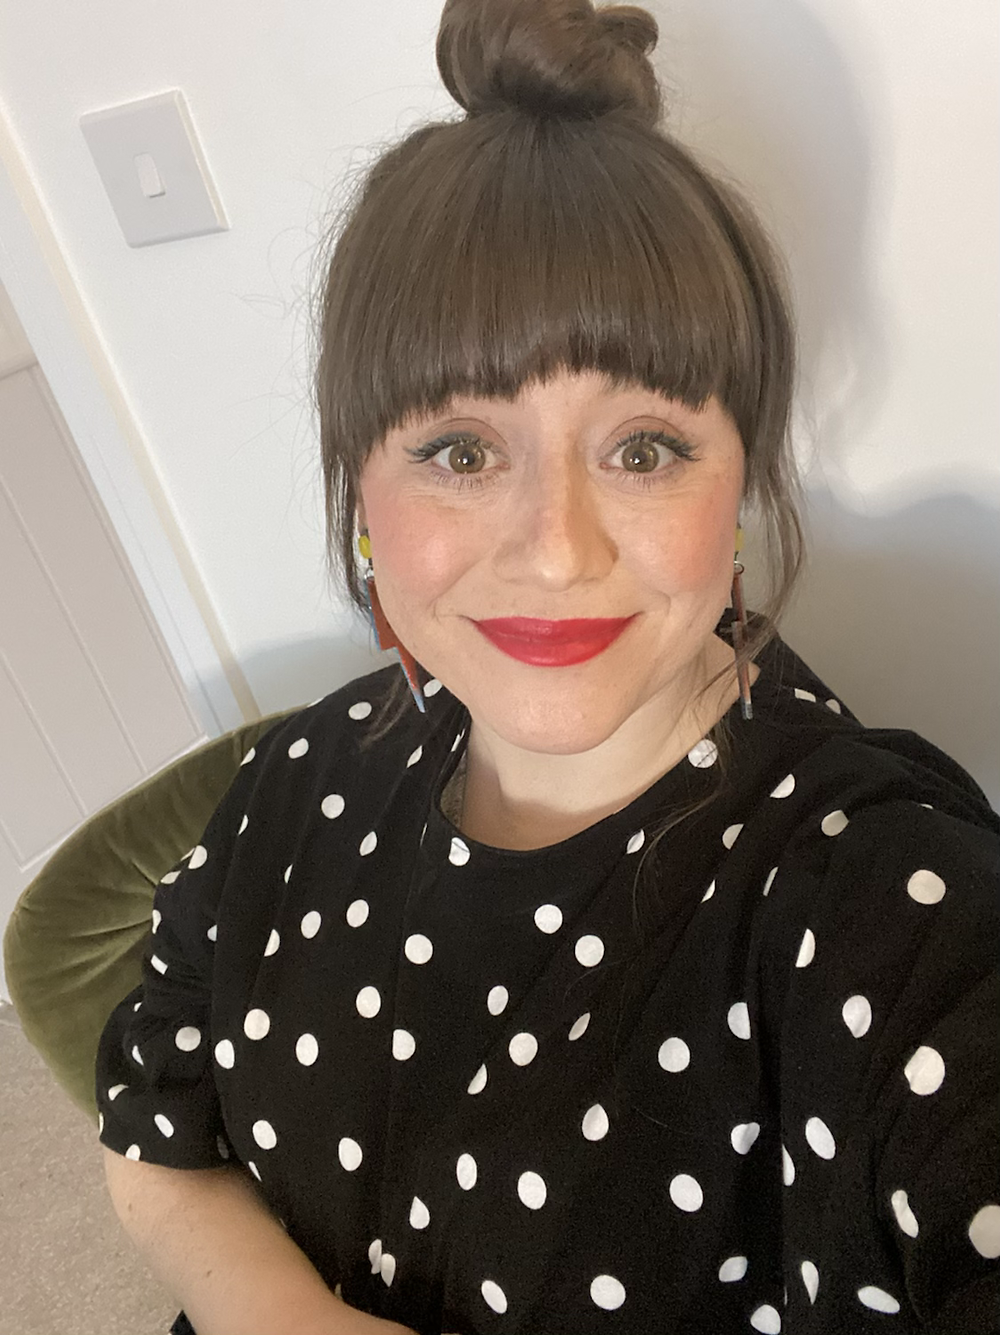 A close up selfie of Lorna, a white woman with brown hair tied up in a top knot. She has a heavy fringe. She is wearing make up, a polka dot dress, lightening bolt earrings and is smiling directly at the camera.